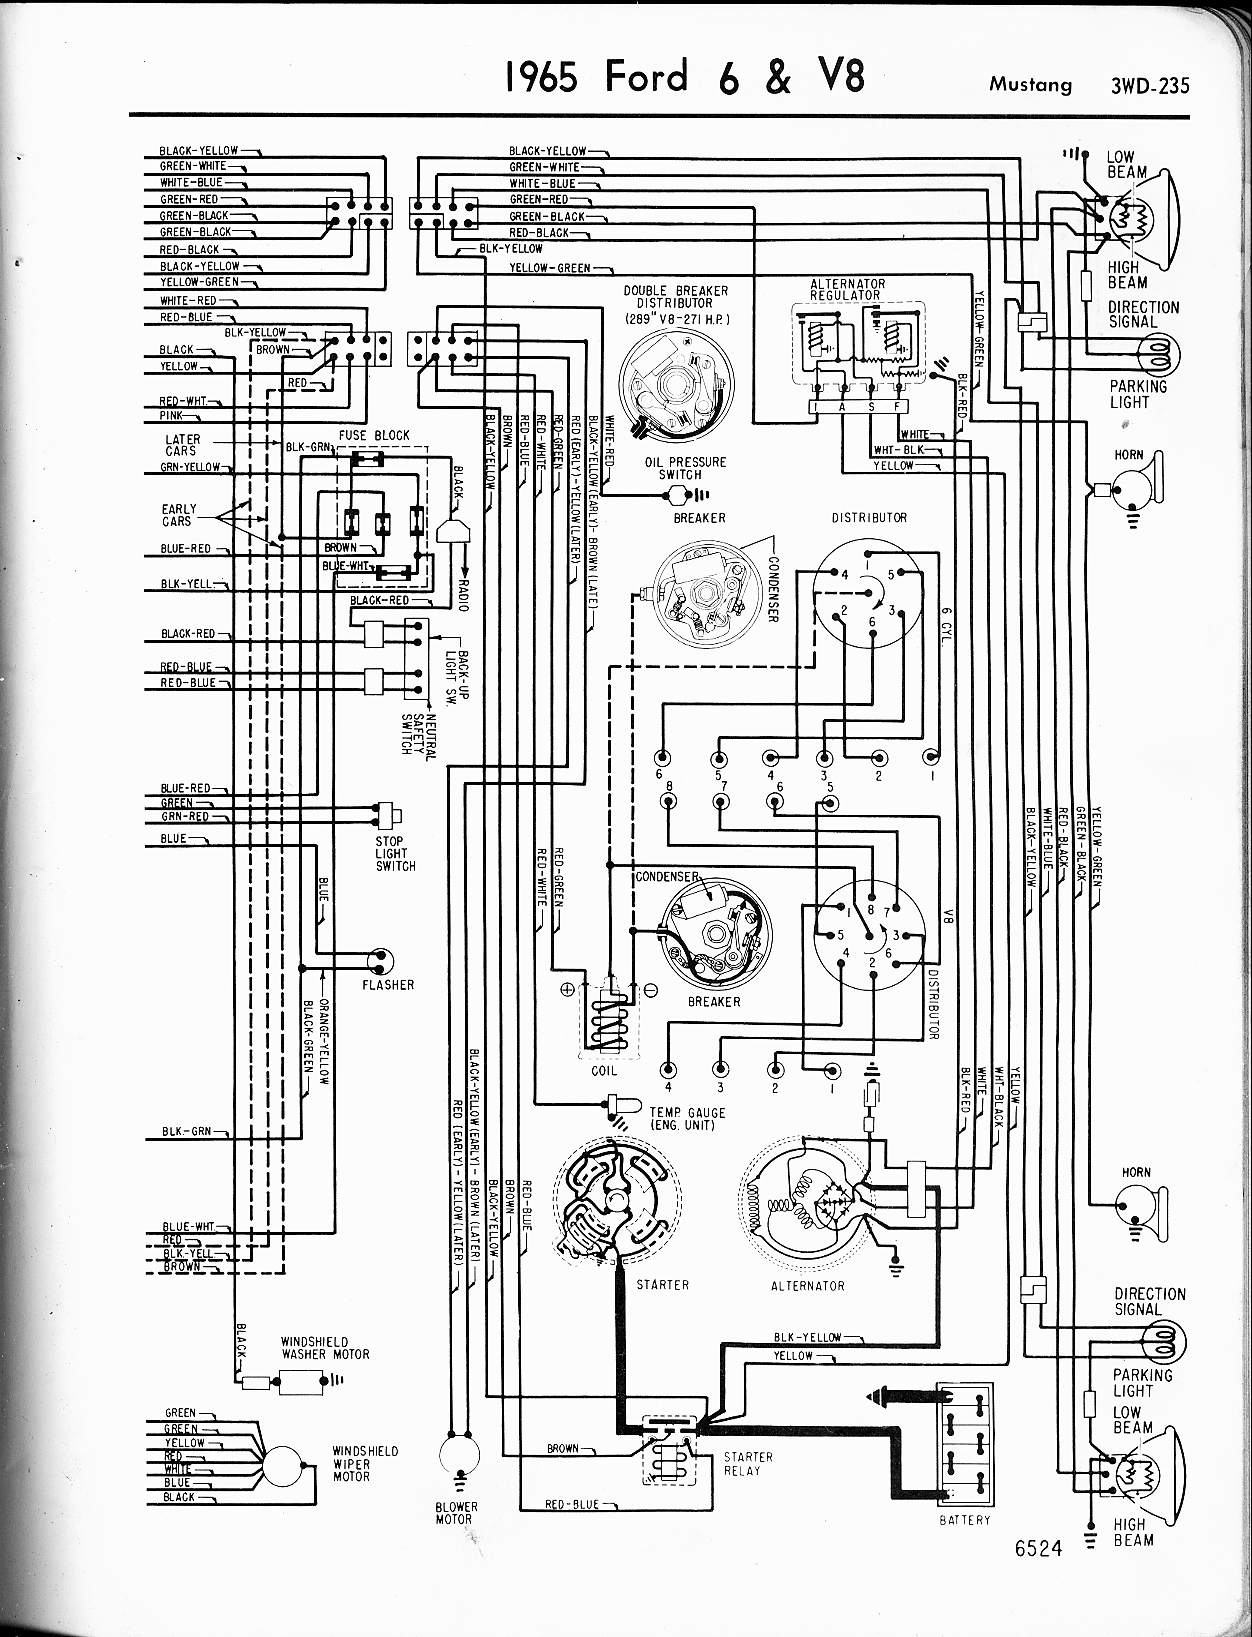 Wiring Diagram For 69 Mustang Good 1st 1970 Schematic Headlights 1969 Instrument Panel Third Rh 7 14 13 Jacobwinterstein Com Ford